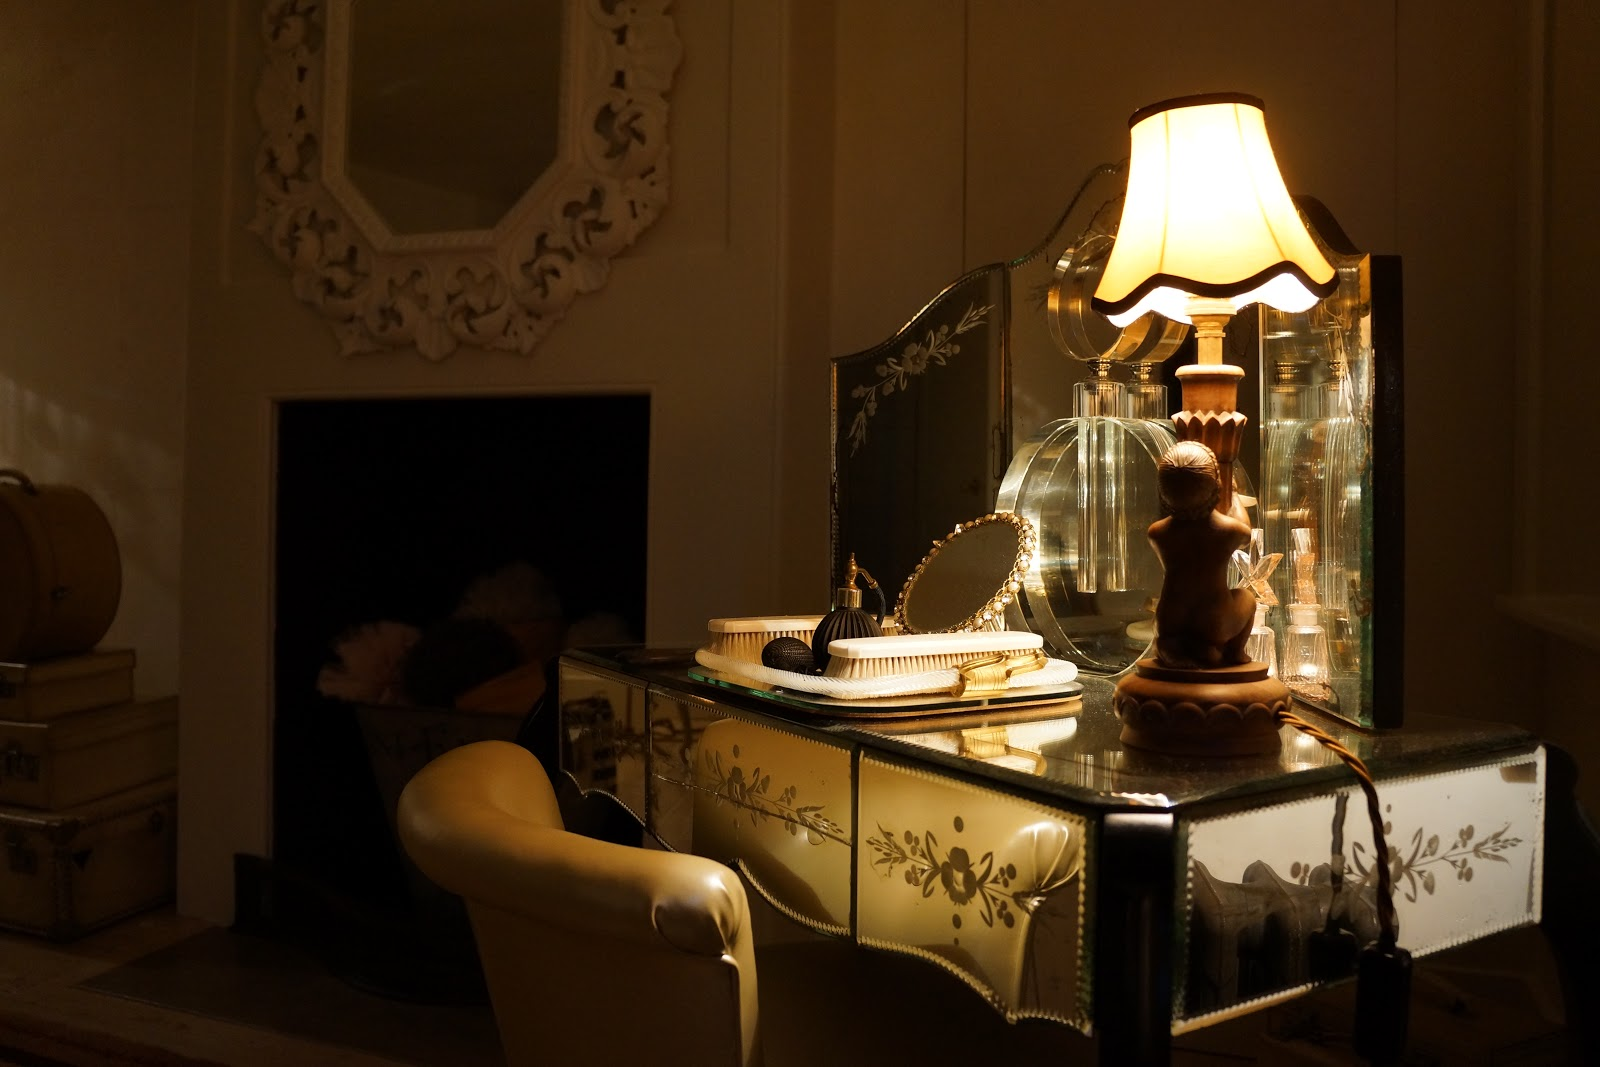 dressing up table at 40 winks hotel